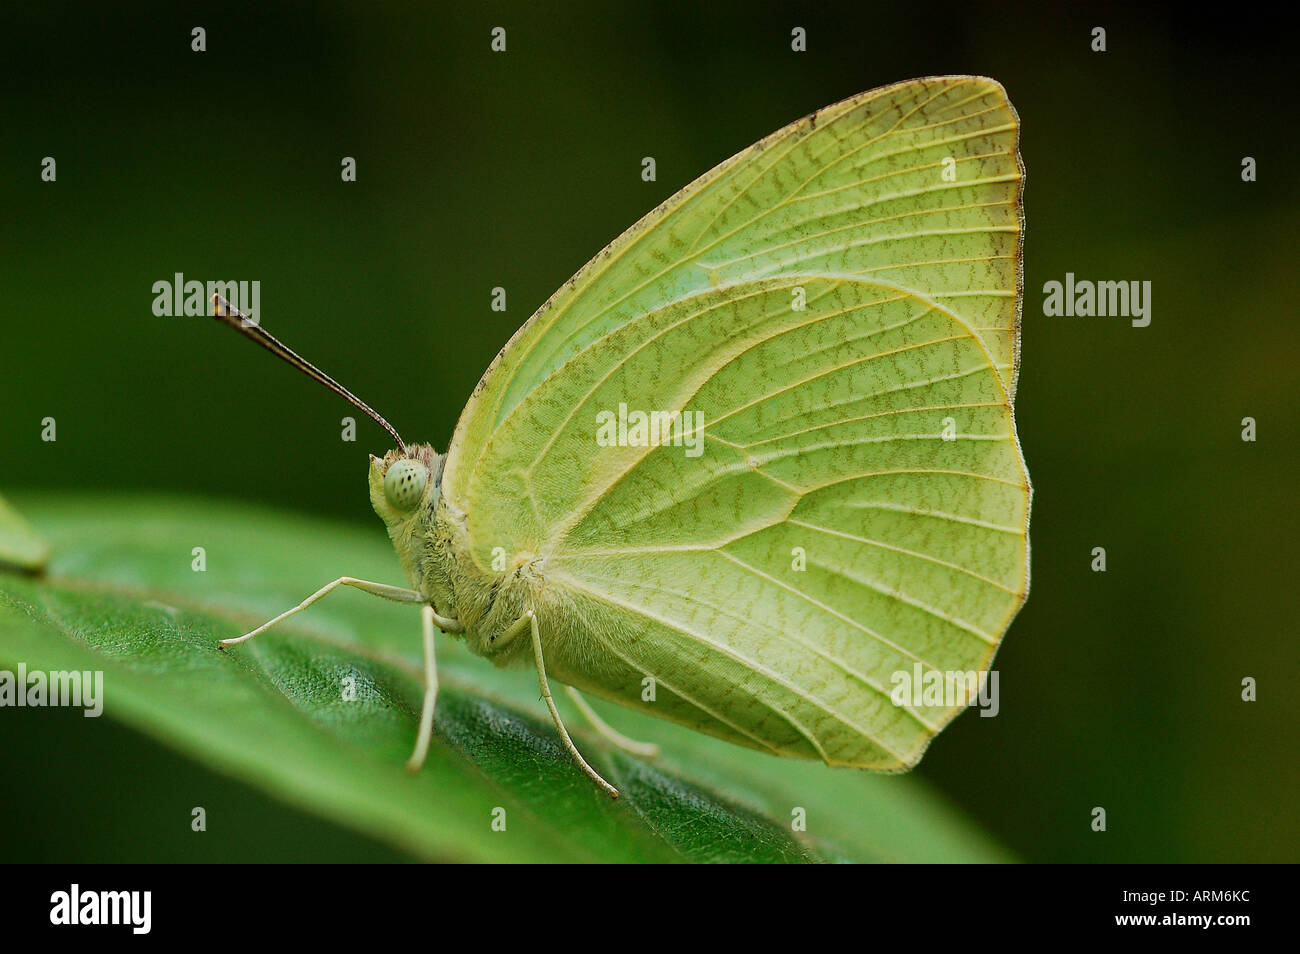 IKA101112 Butterfly Mottled Emigrant - Stock Image